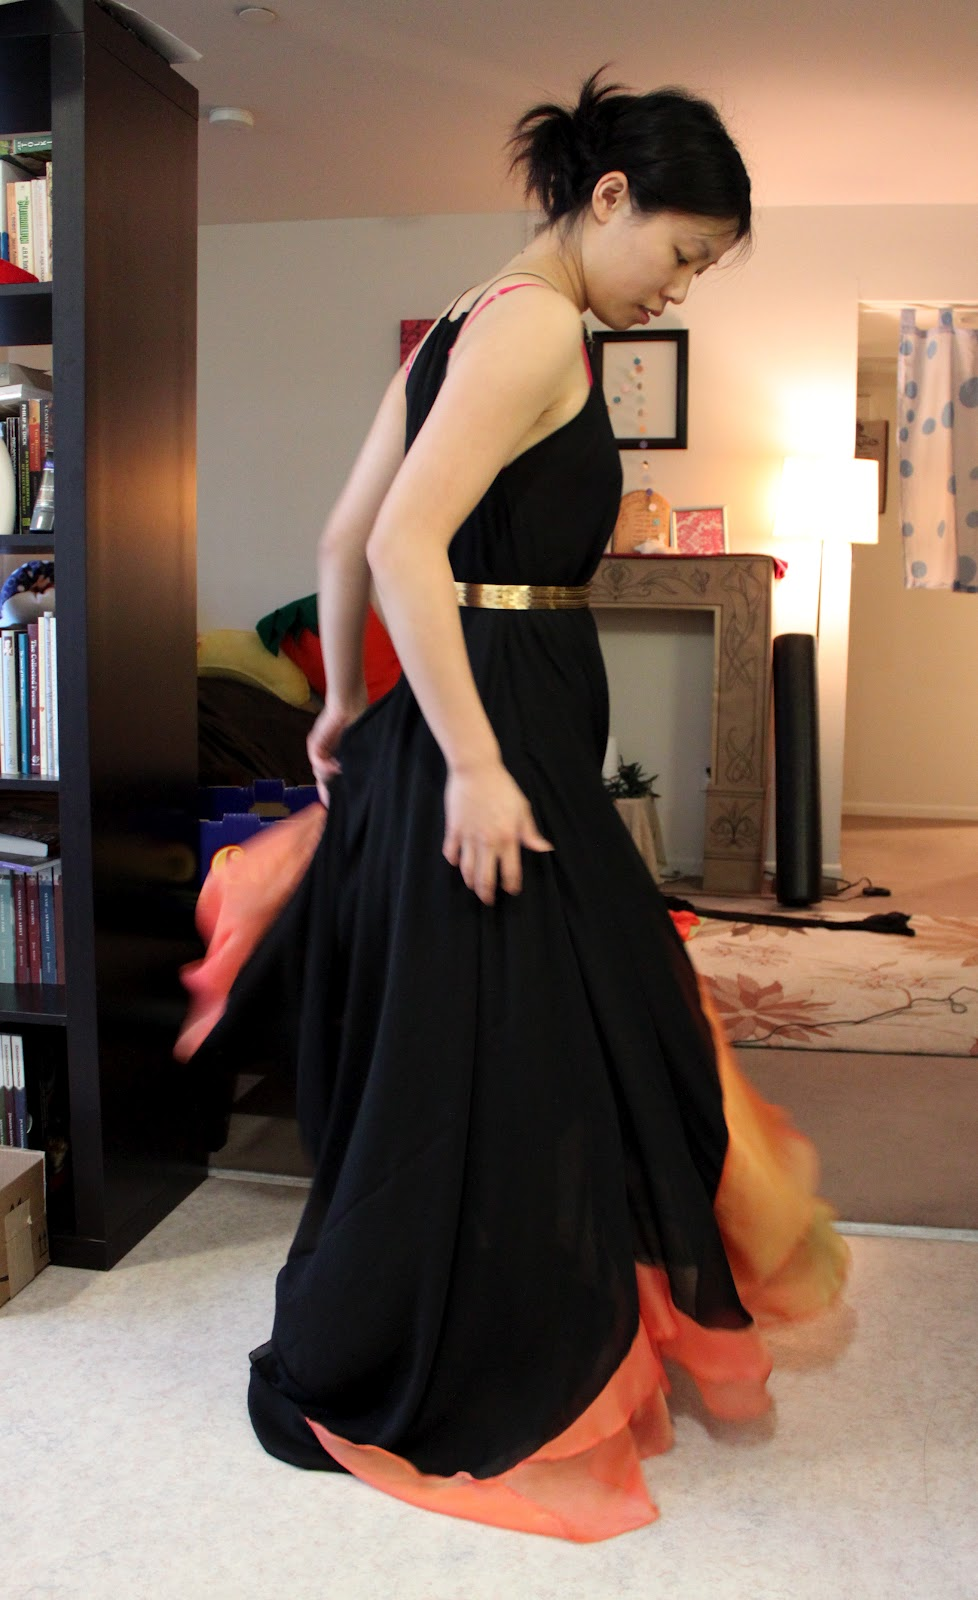 More twirling in the girl on fire dress